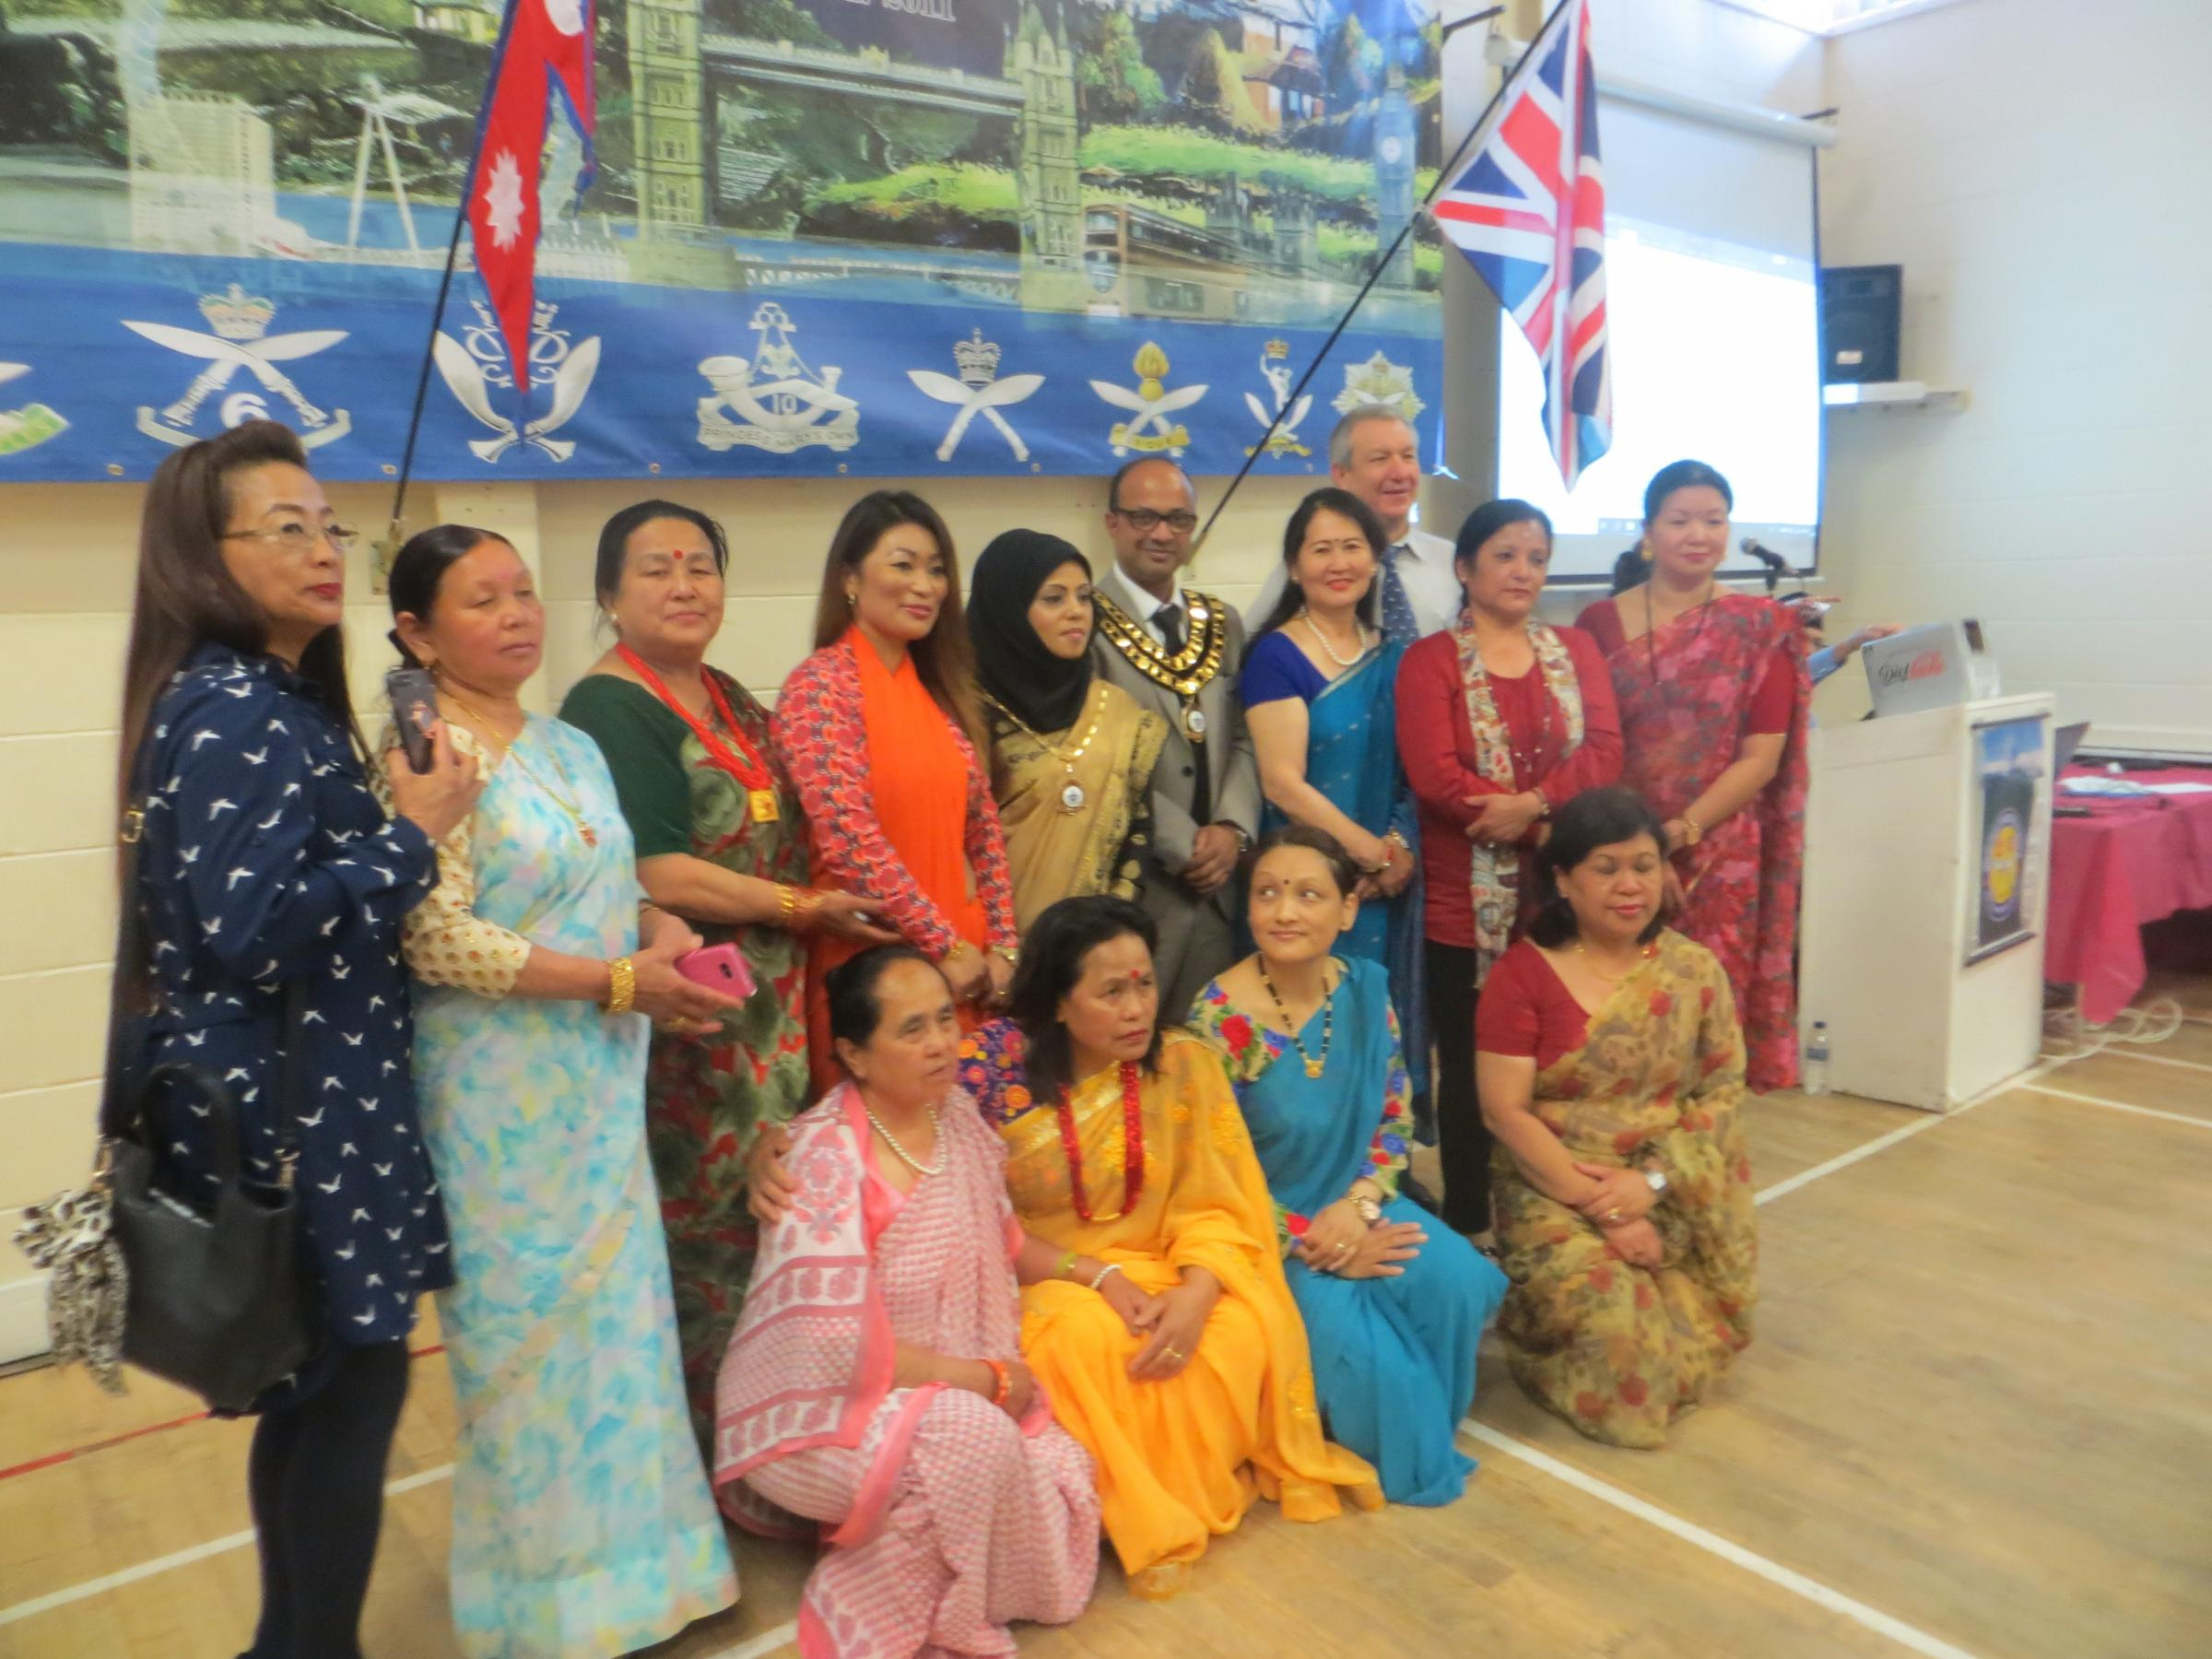 The Swindon - Madhyapur Thimi Friendship Group has launched to facilitate cultural exchanges between the towns